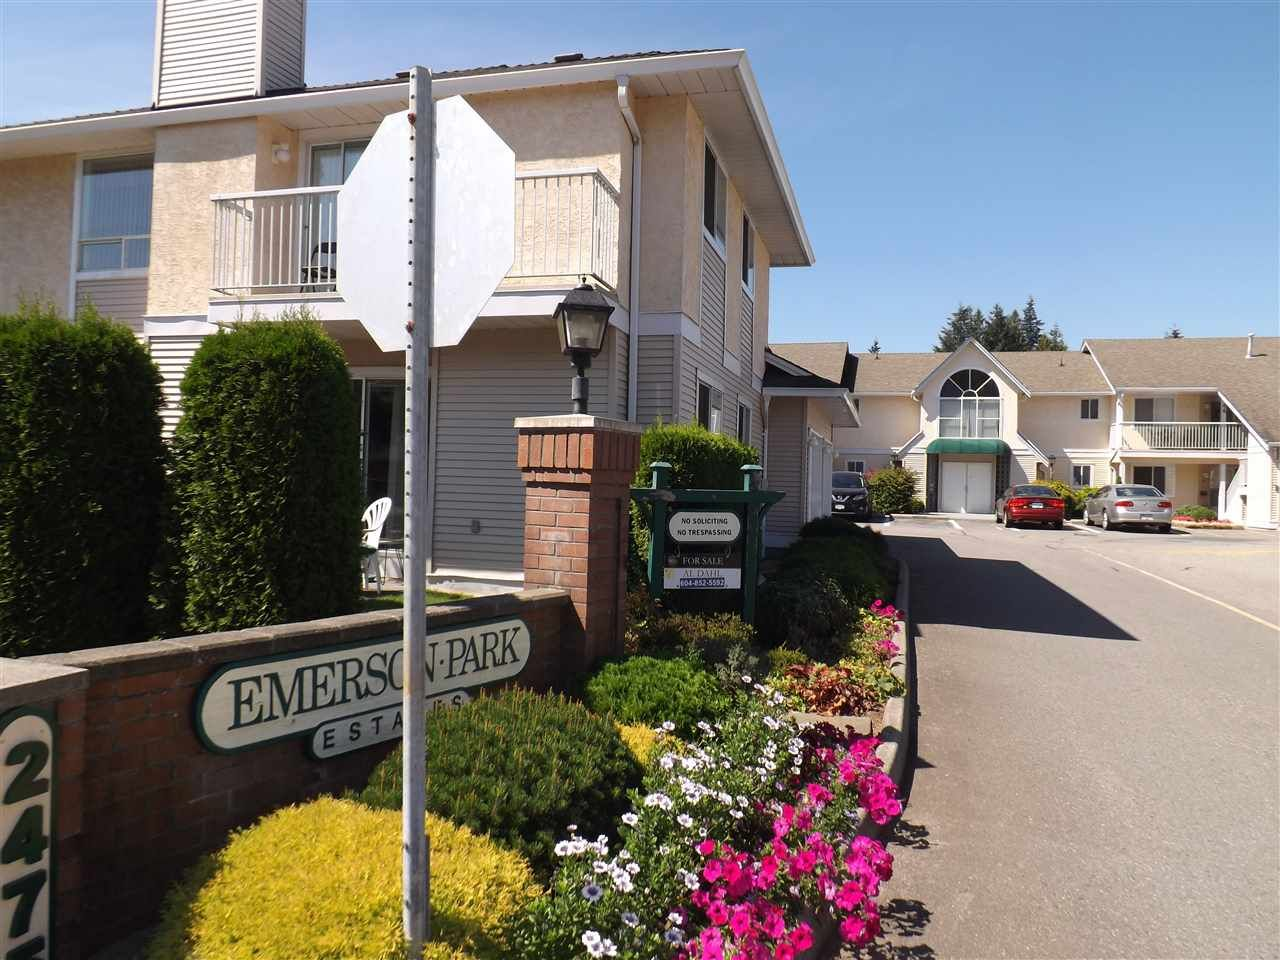 Main Photo: 1 2475 EMERSON Street in Abbotsford: Abbotsford West Townhouse for sale : MLS®# R2101704